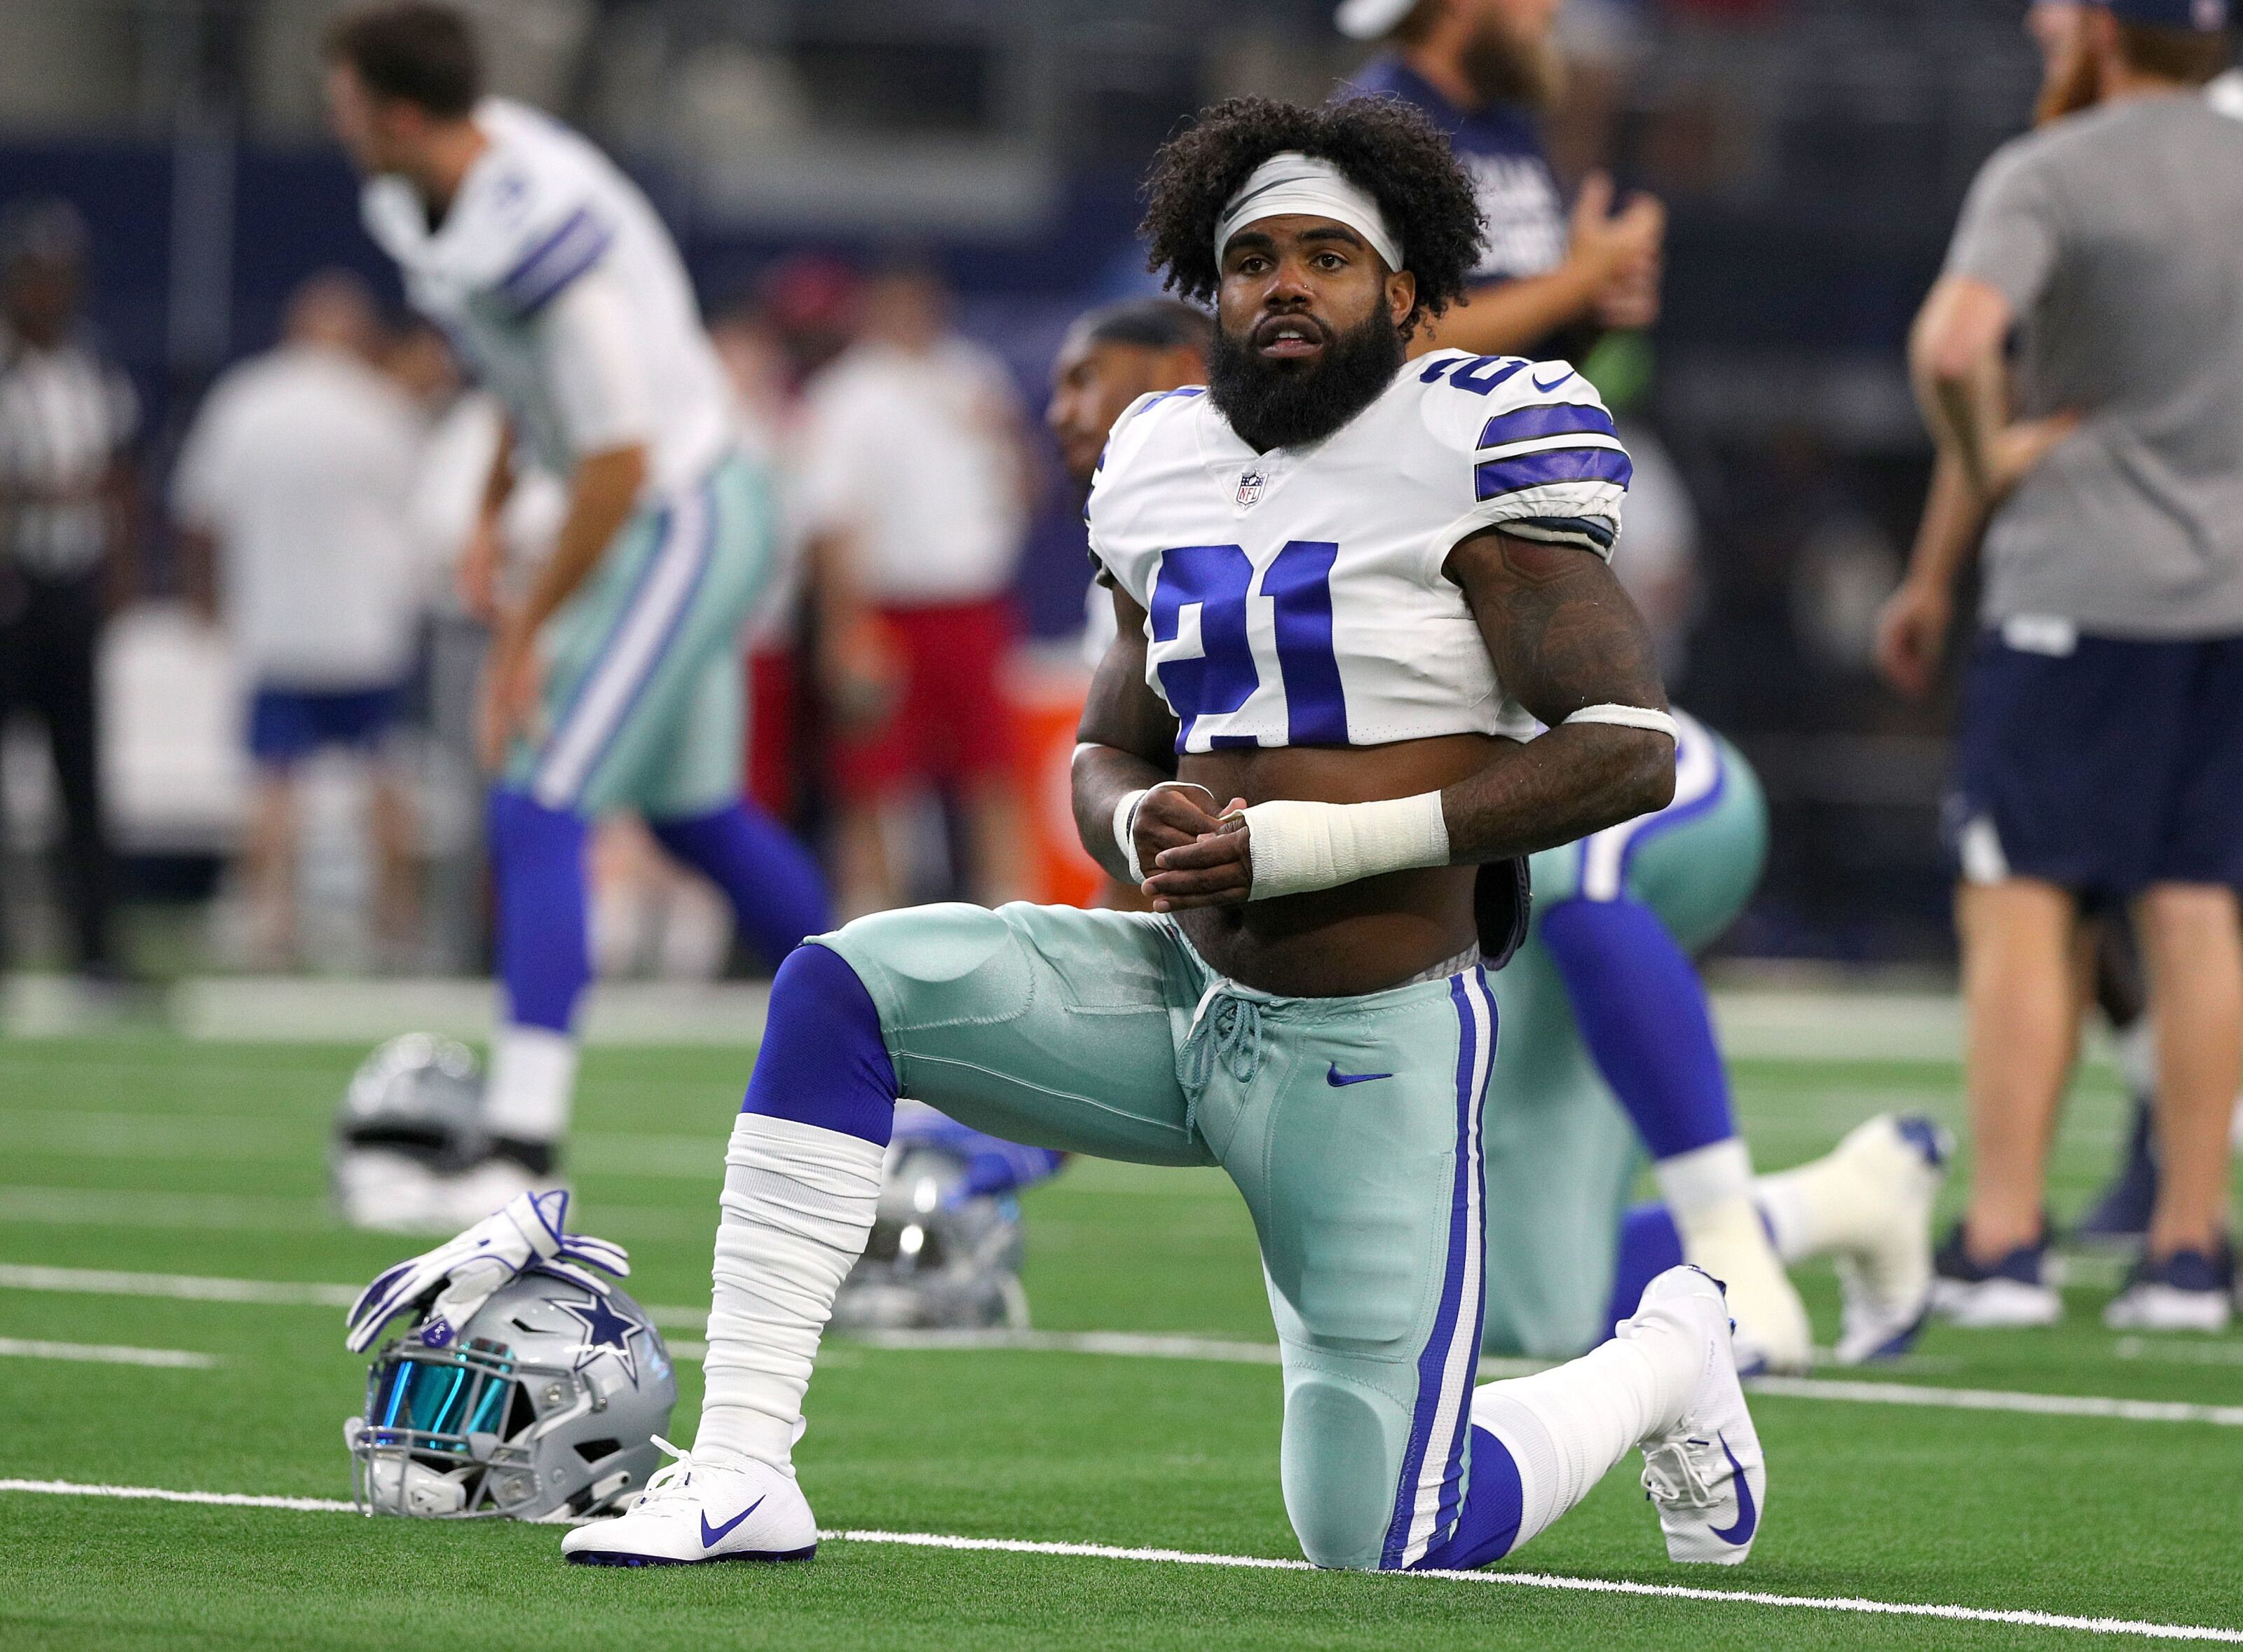 The Dallas Cowboys comeback player of the year and MVPs will be…